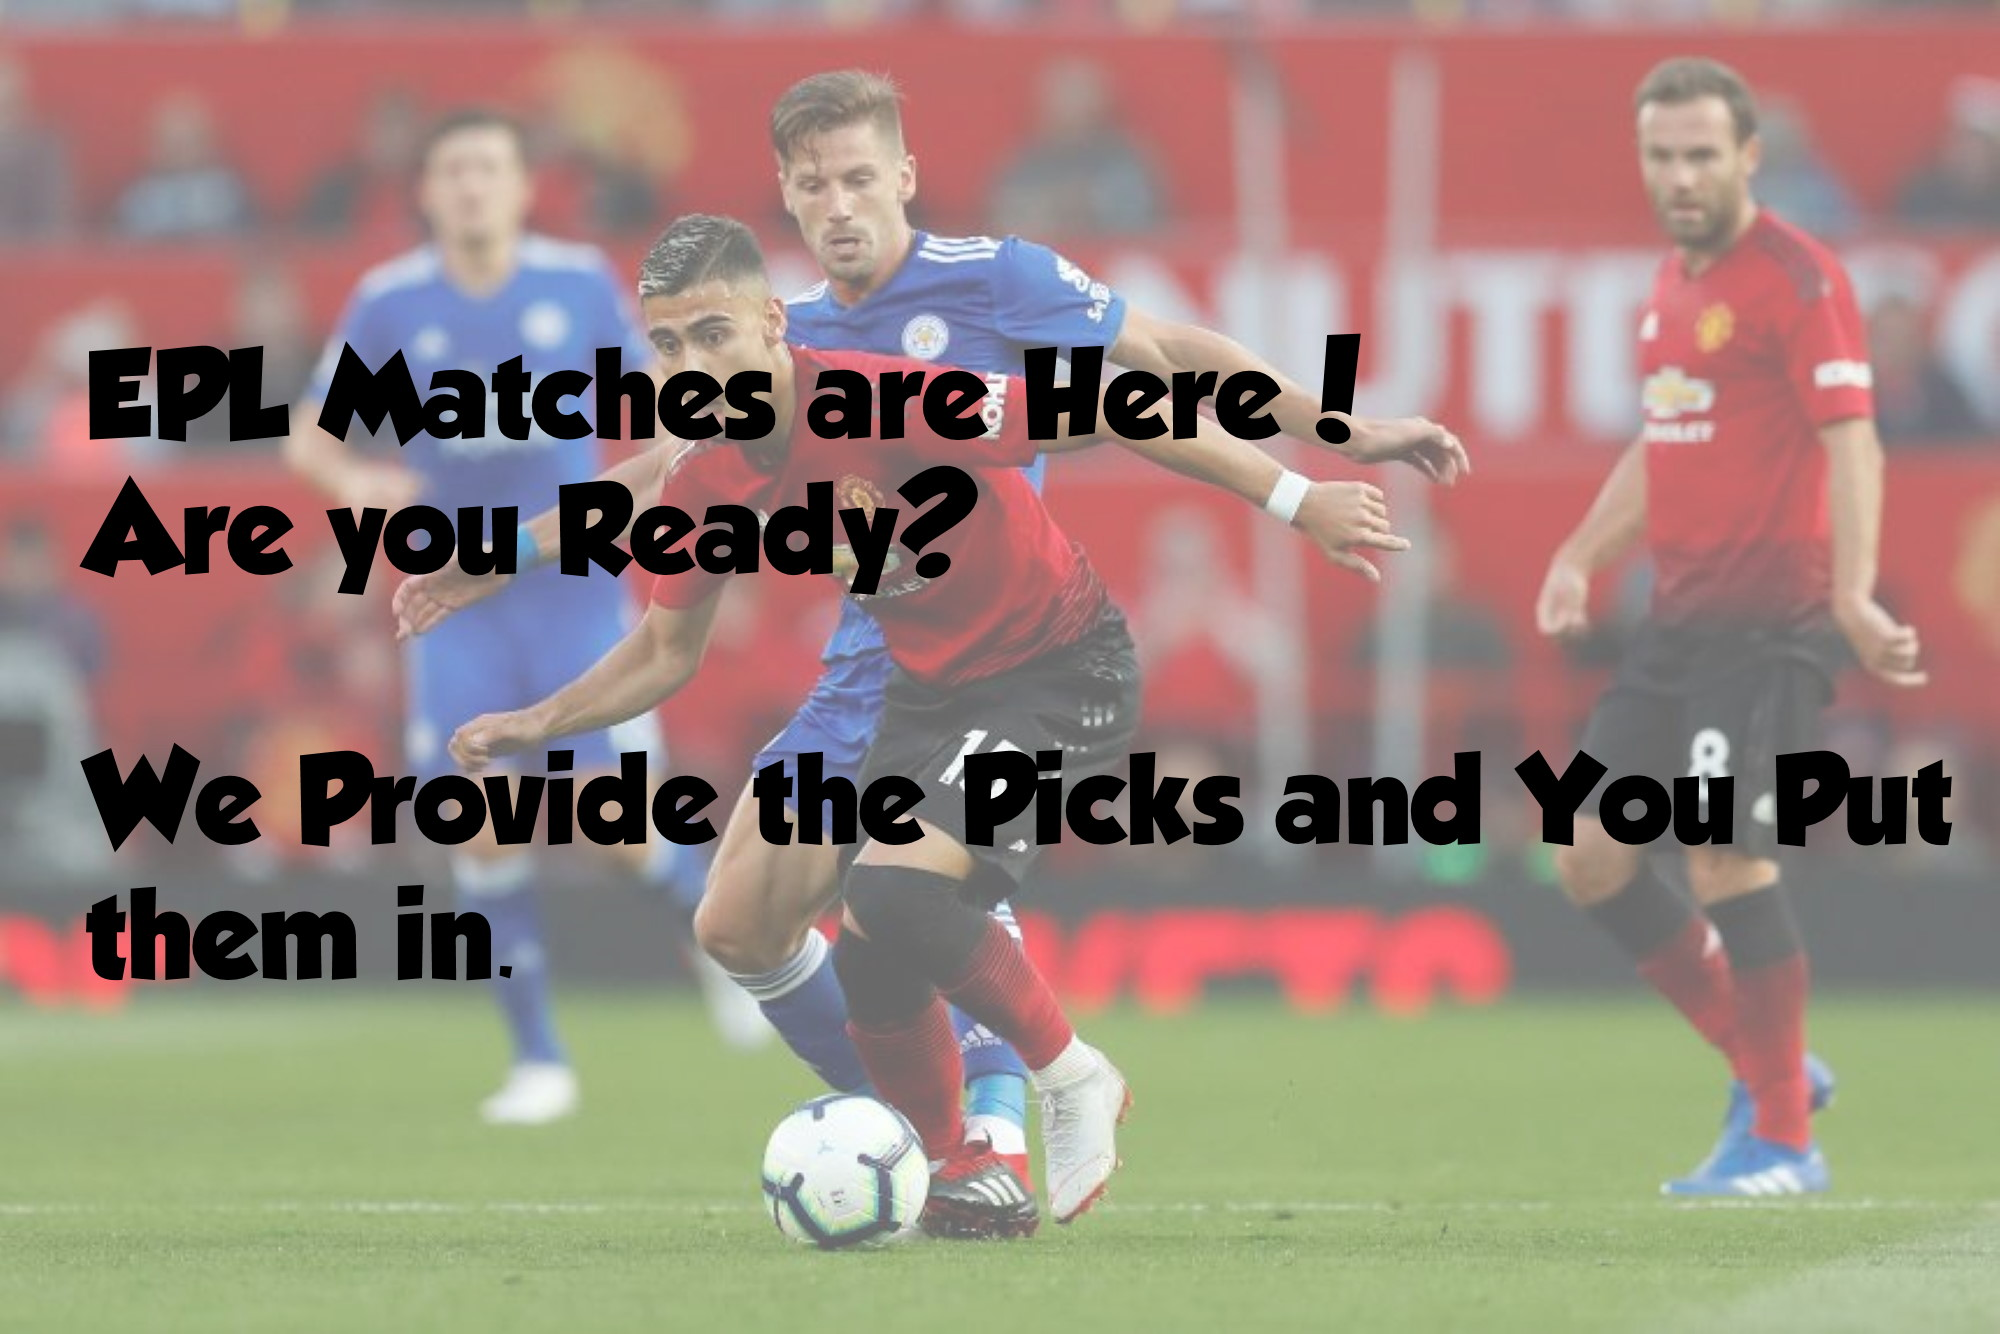 MatchDay 18 and We Have the Picks